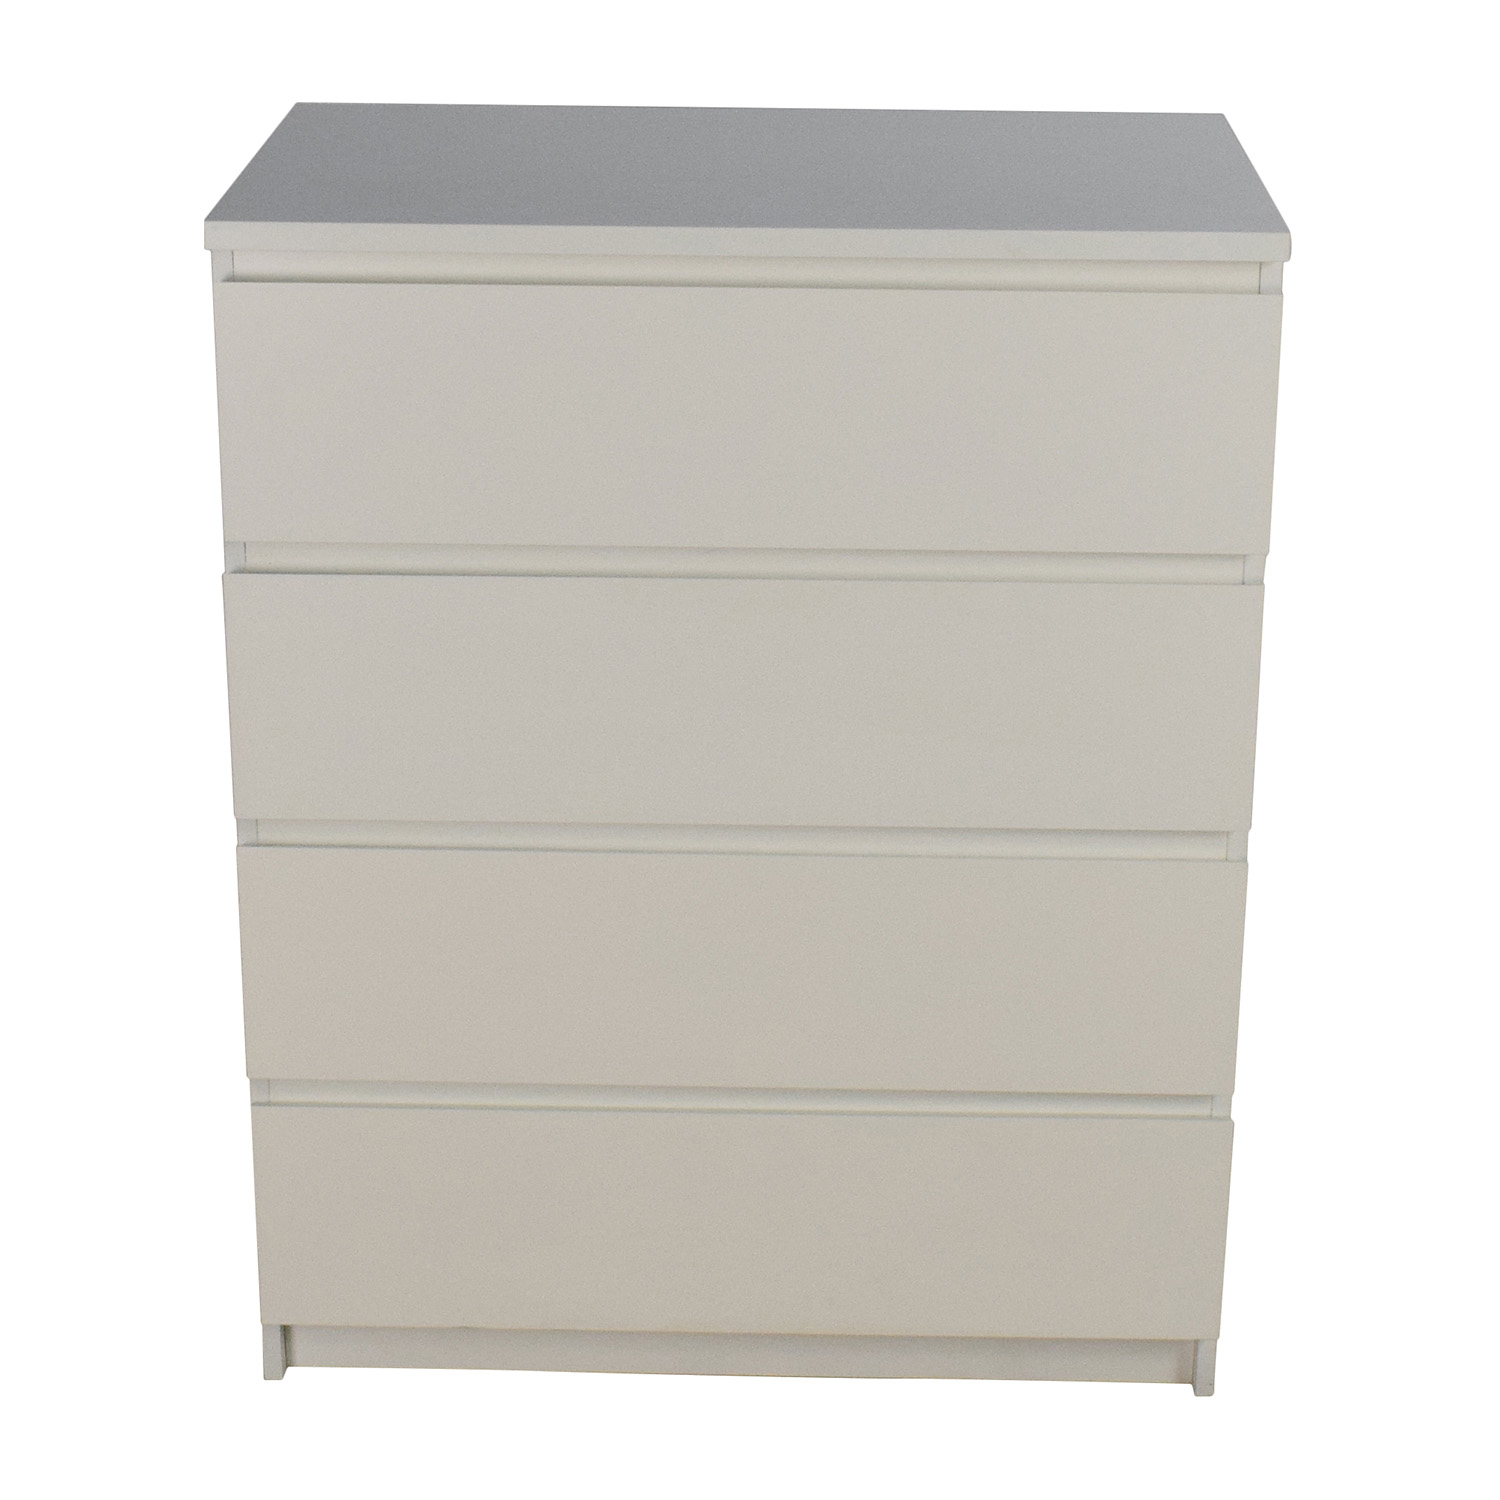 Ikea Armoire Malm Ikea Four Drawer Dresser Bestdressers 2019